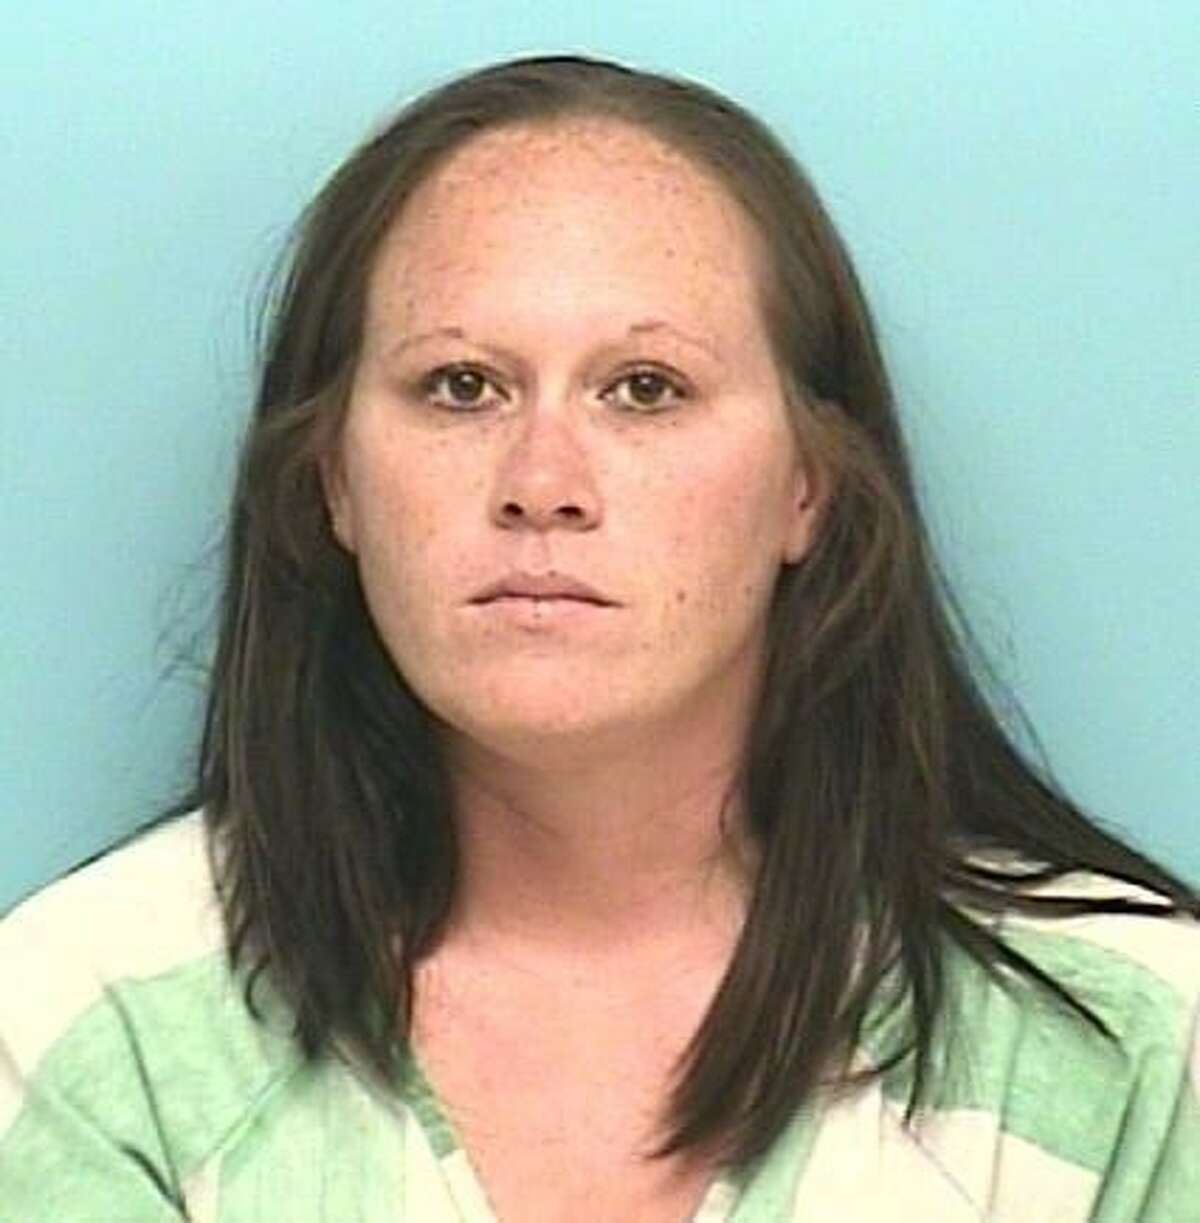 CLARK, Rochelle LynnWhite/Female DOB: 02/03/1980Height: 5'03'' Weight: 170 lbs.Hair: Brown Eyes: BrownWarrant: # 110708174 Motion to RevokeDebit/Credit Card Abuse x's 2LKA: Coaltown Rd., Willis.